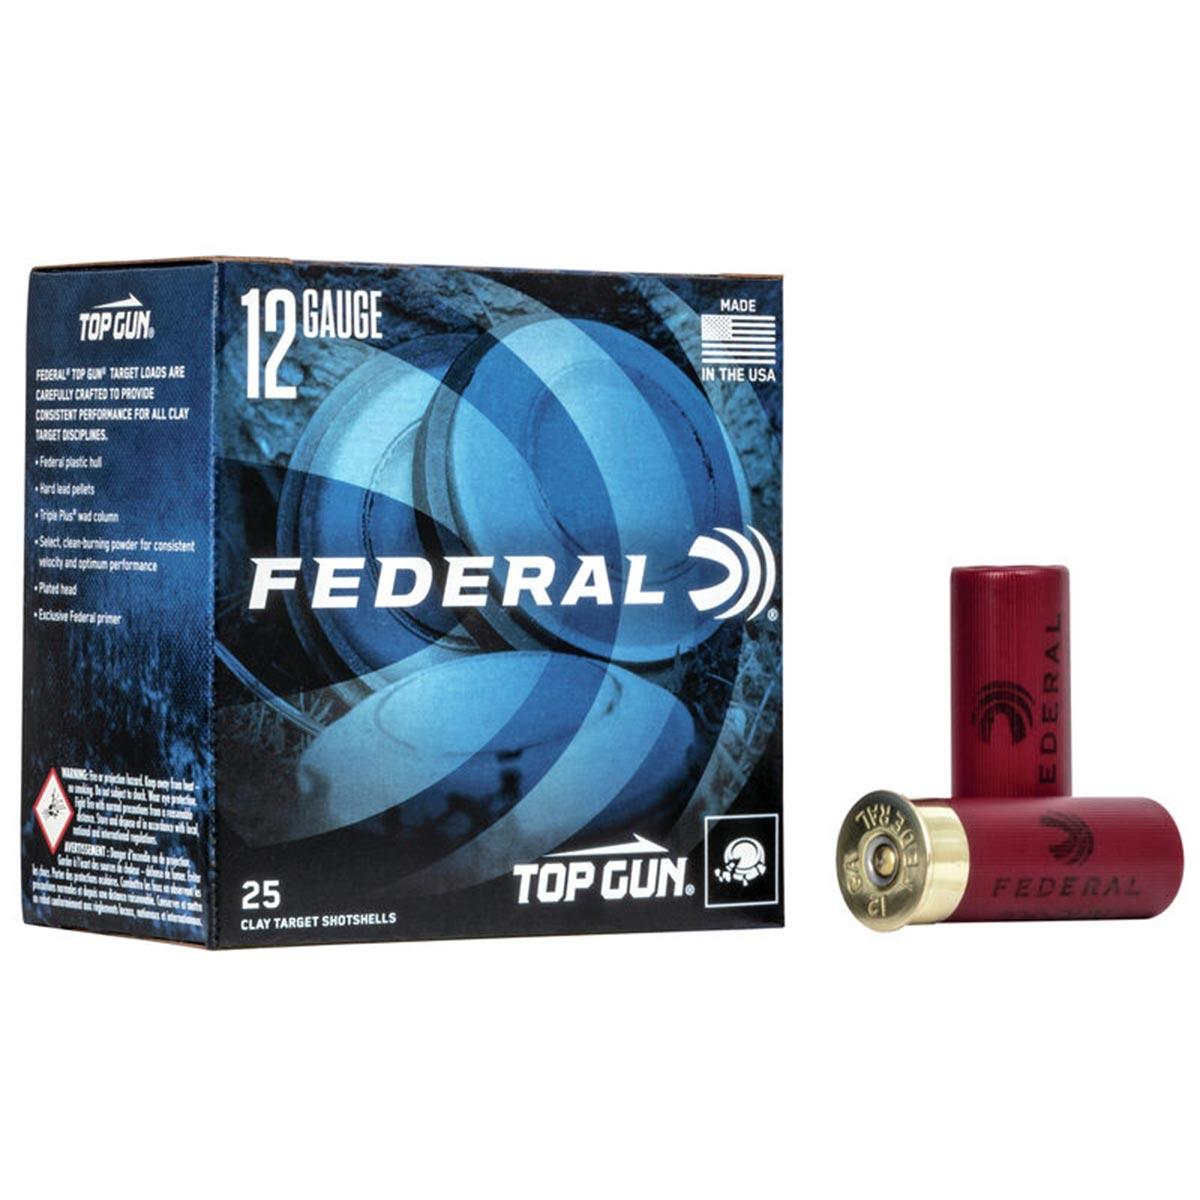 "Federal Top Gun Target Loads, 12 GA 2 3/4"" 7/8 oz 1200FPS_1.jpg"